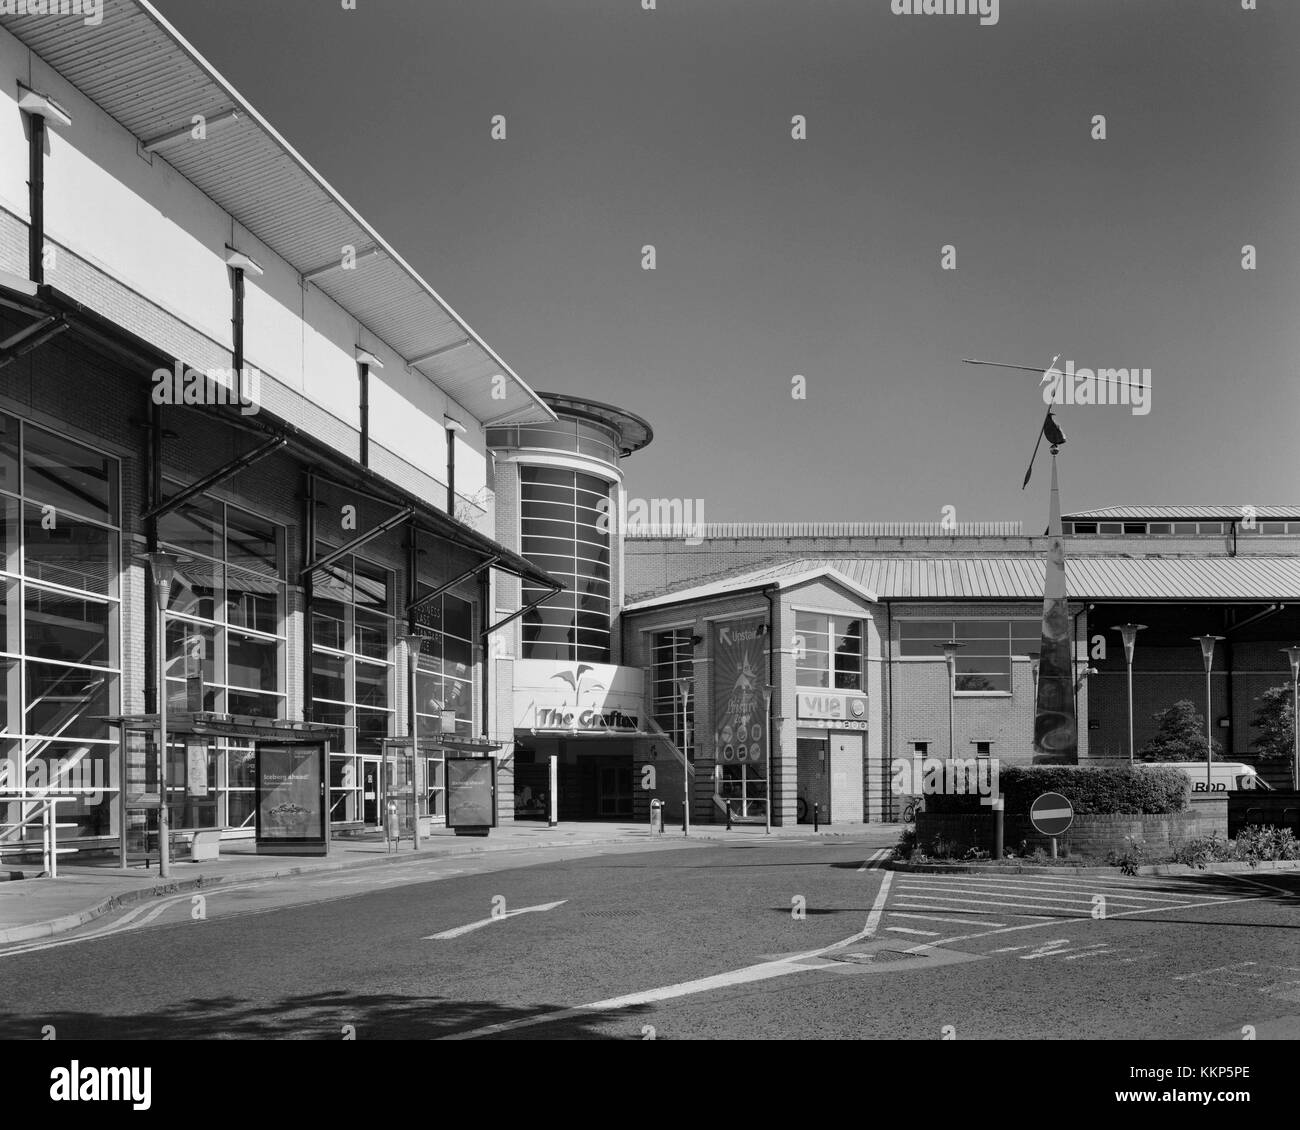 East Road entrance to the Grafton shopping centre in Cambridge - Stock Image